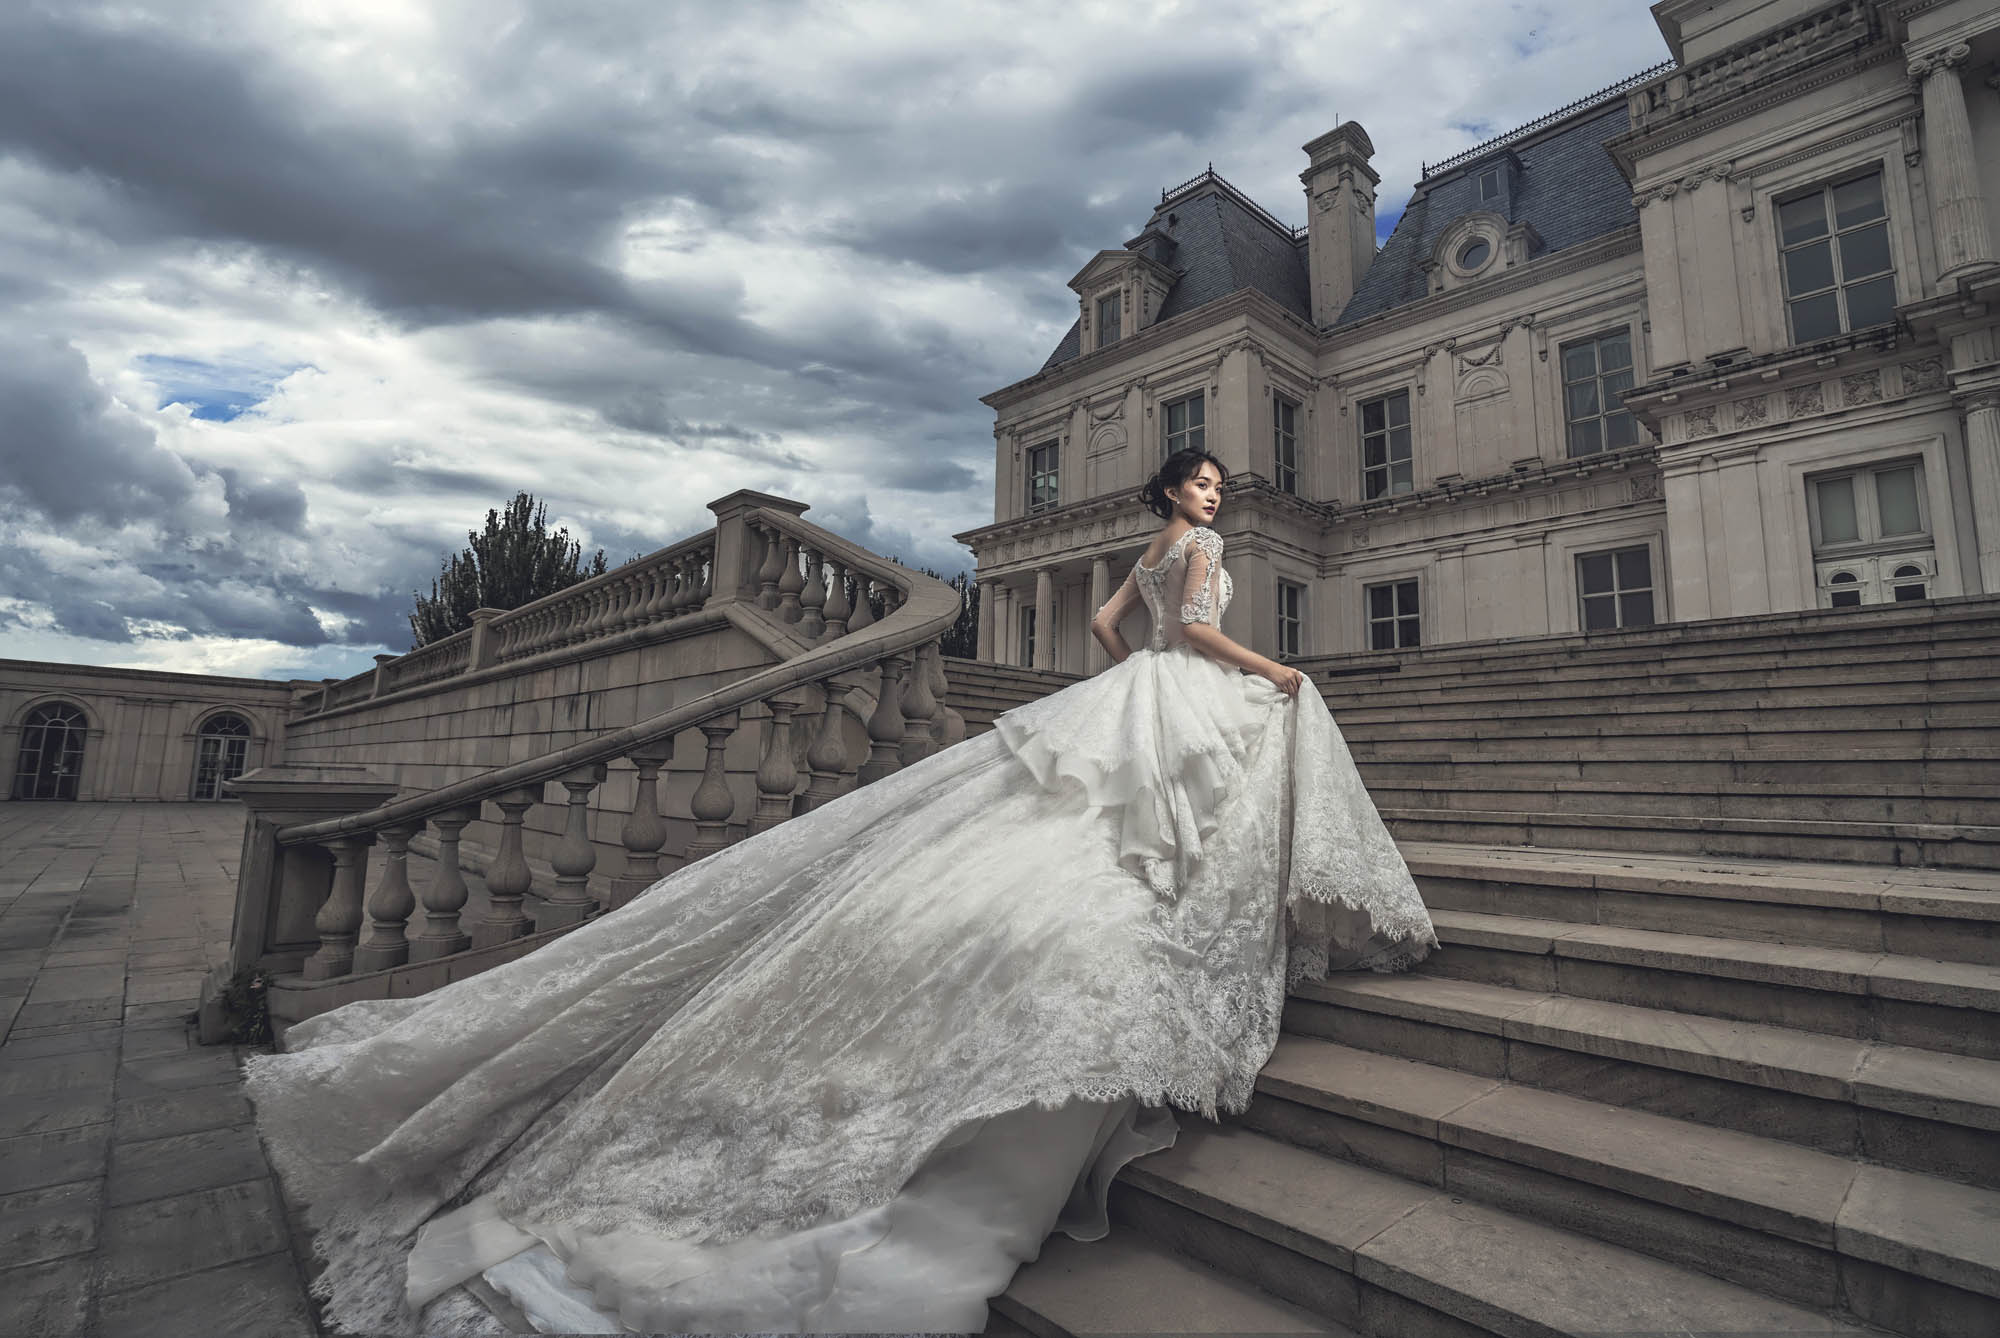 Bride in dramatic princess ballgown ascending stairs at a French chateau, by CM Leung